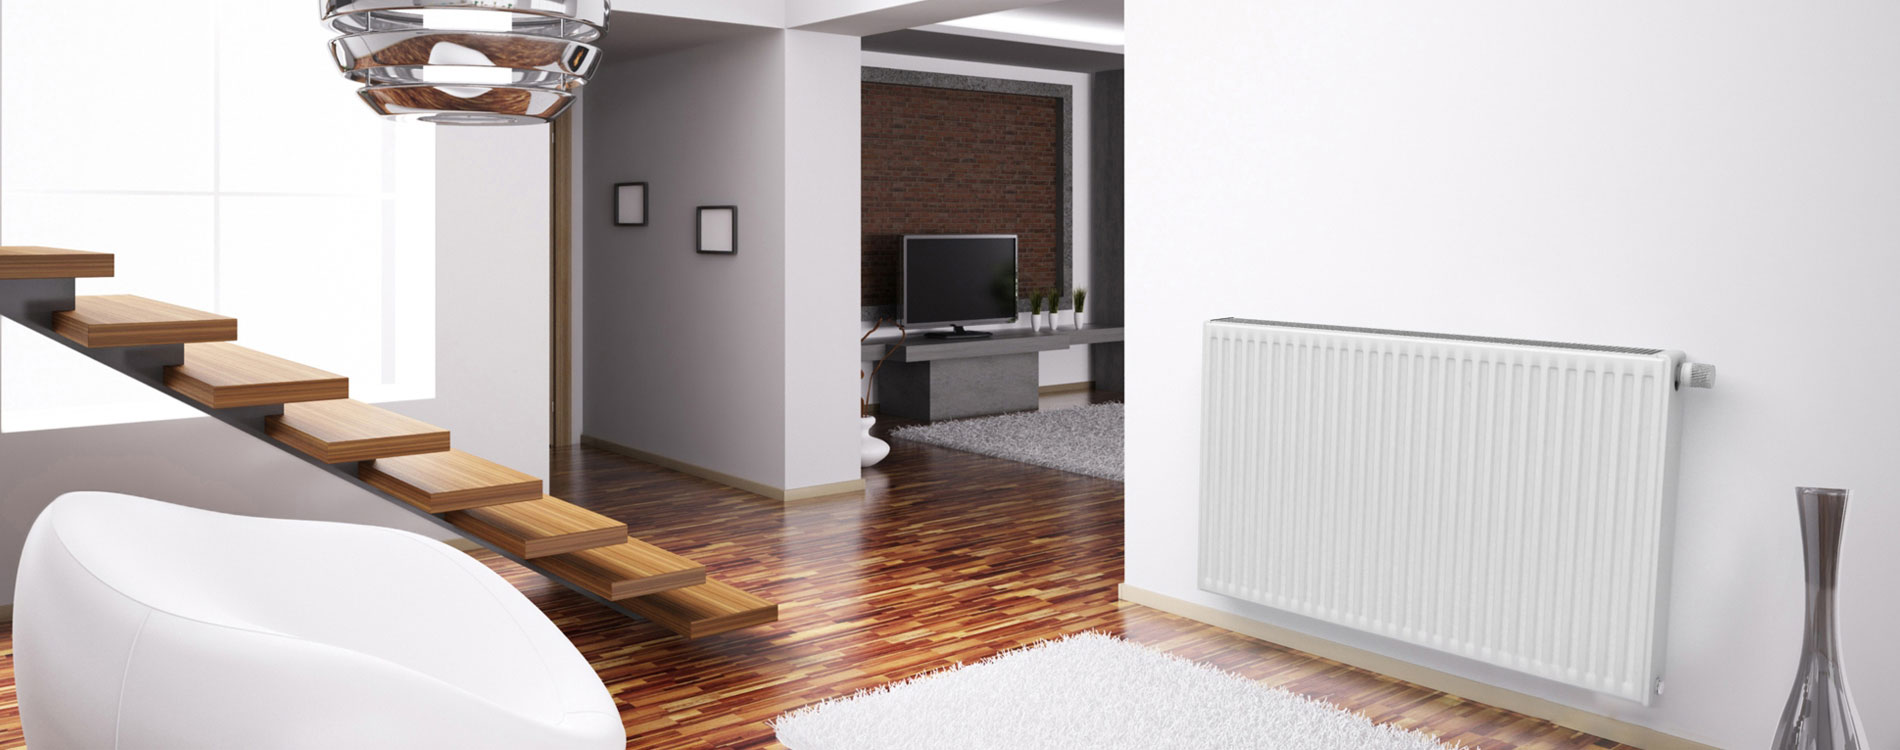 Luxpan Panel Radiators